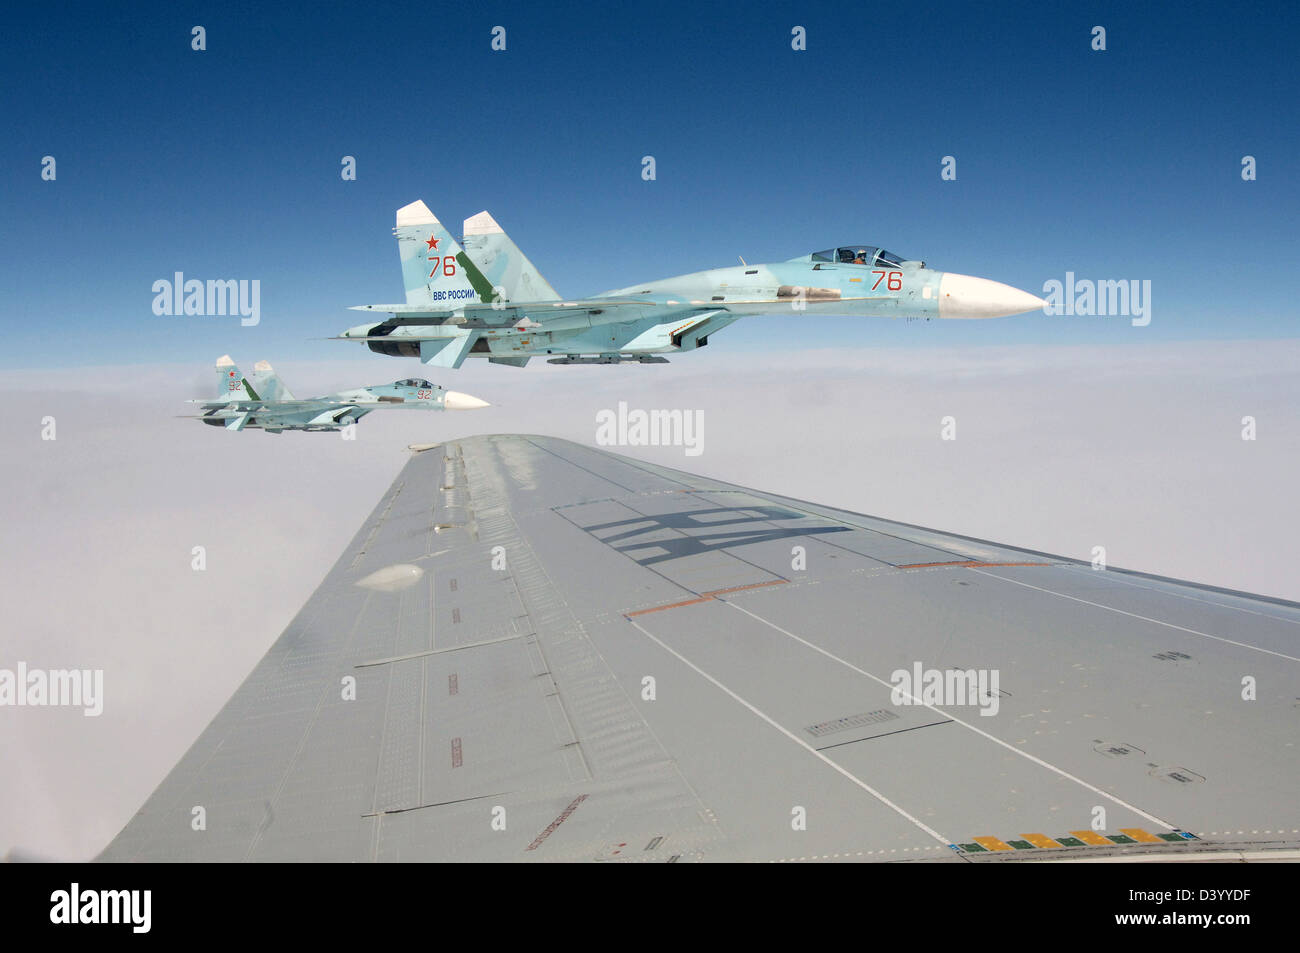 A pair of Russian SU-27 fighter aircraft escorts a simulated hijacked airliner during a joint training exercise - Stock Image